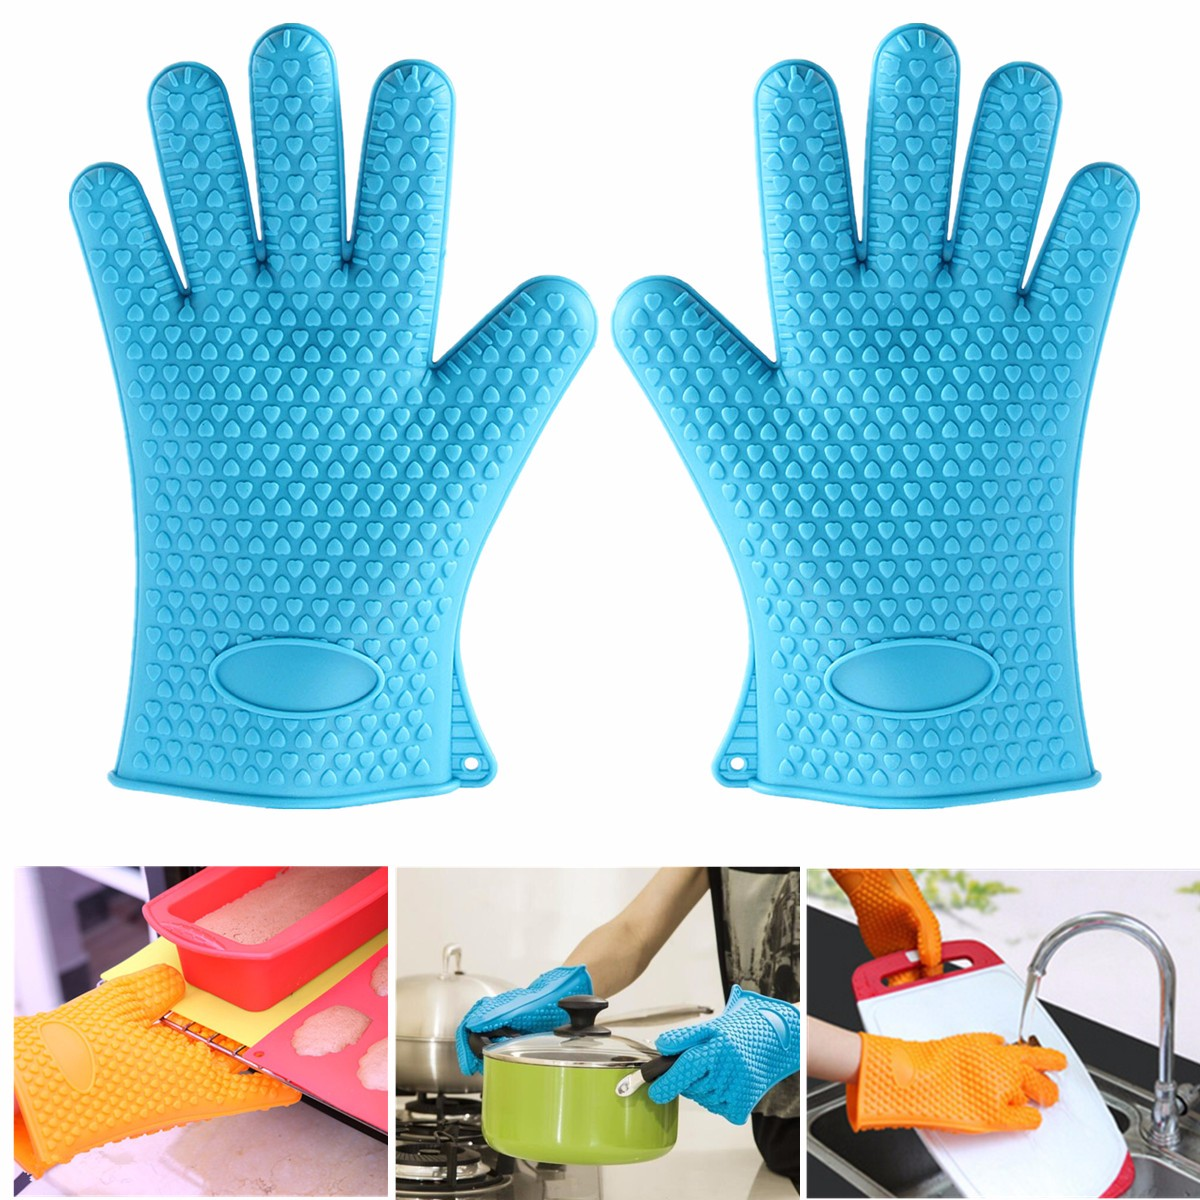 A Pair Silicone Heat Resistant Gloves BBQ Grilling Oven Mitts Pot Holders For Cooking Baking Kitchen